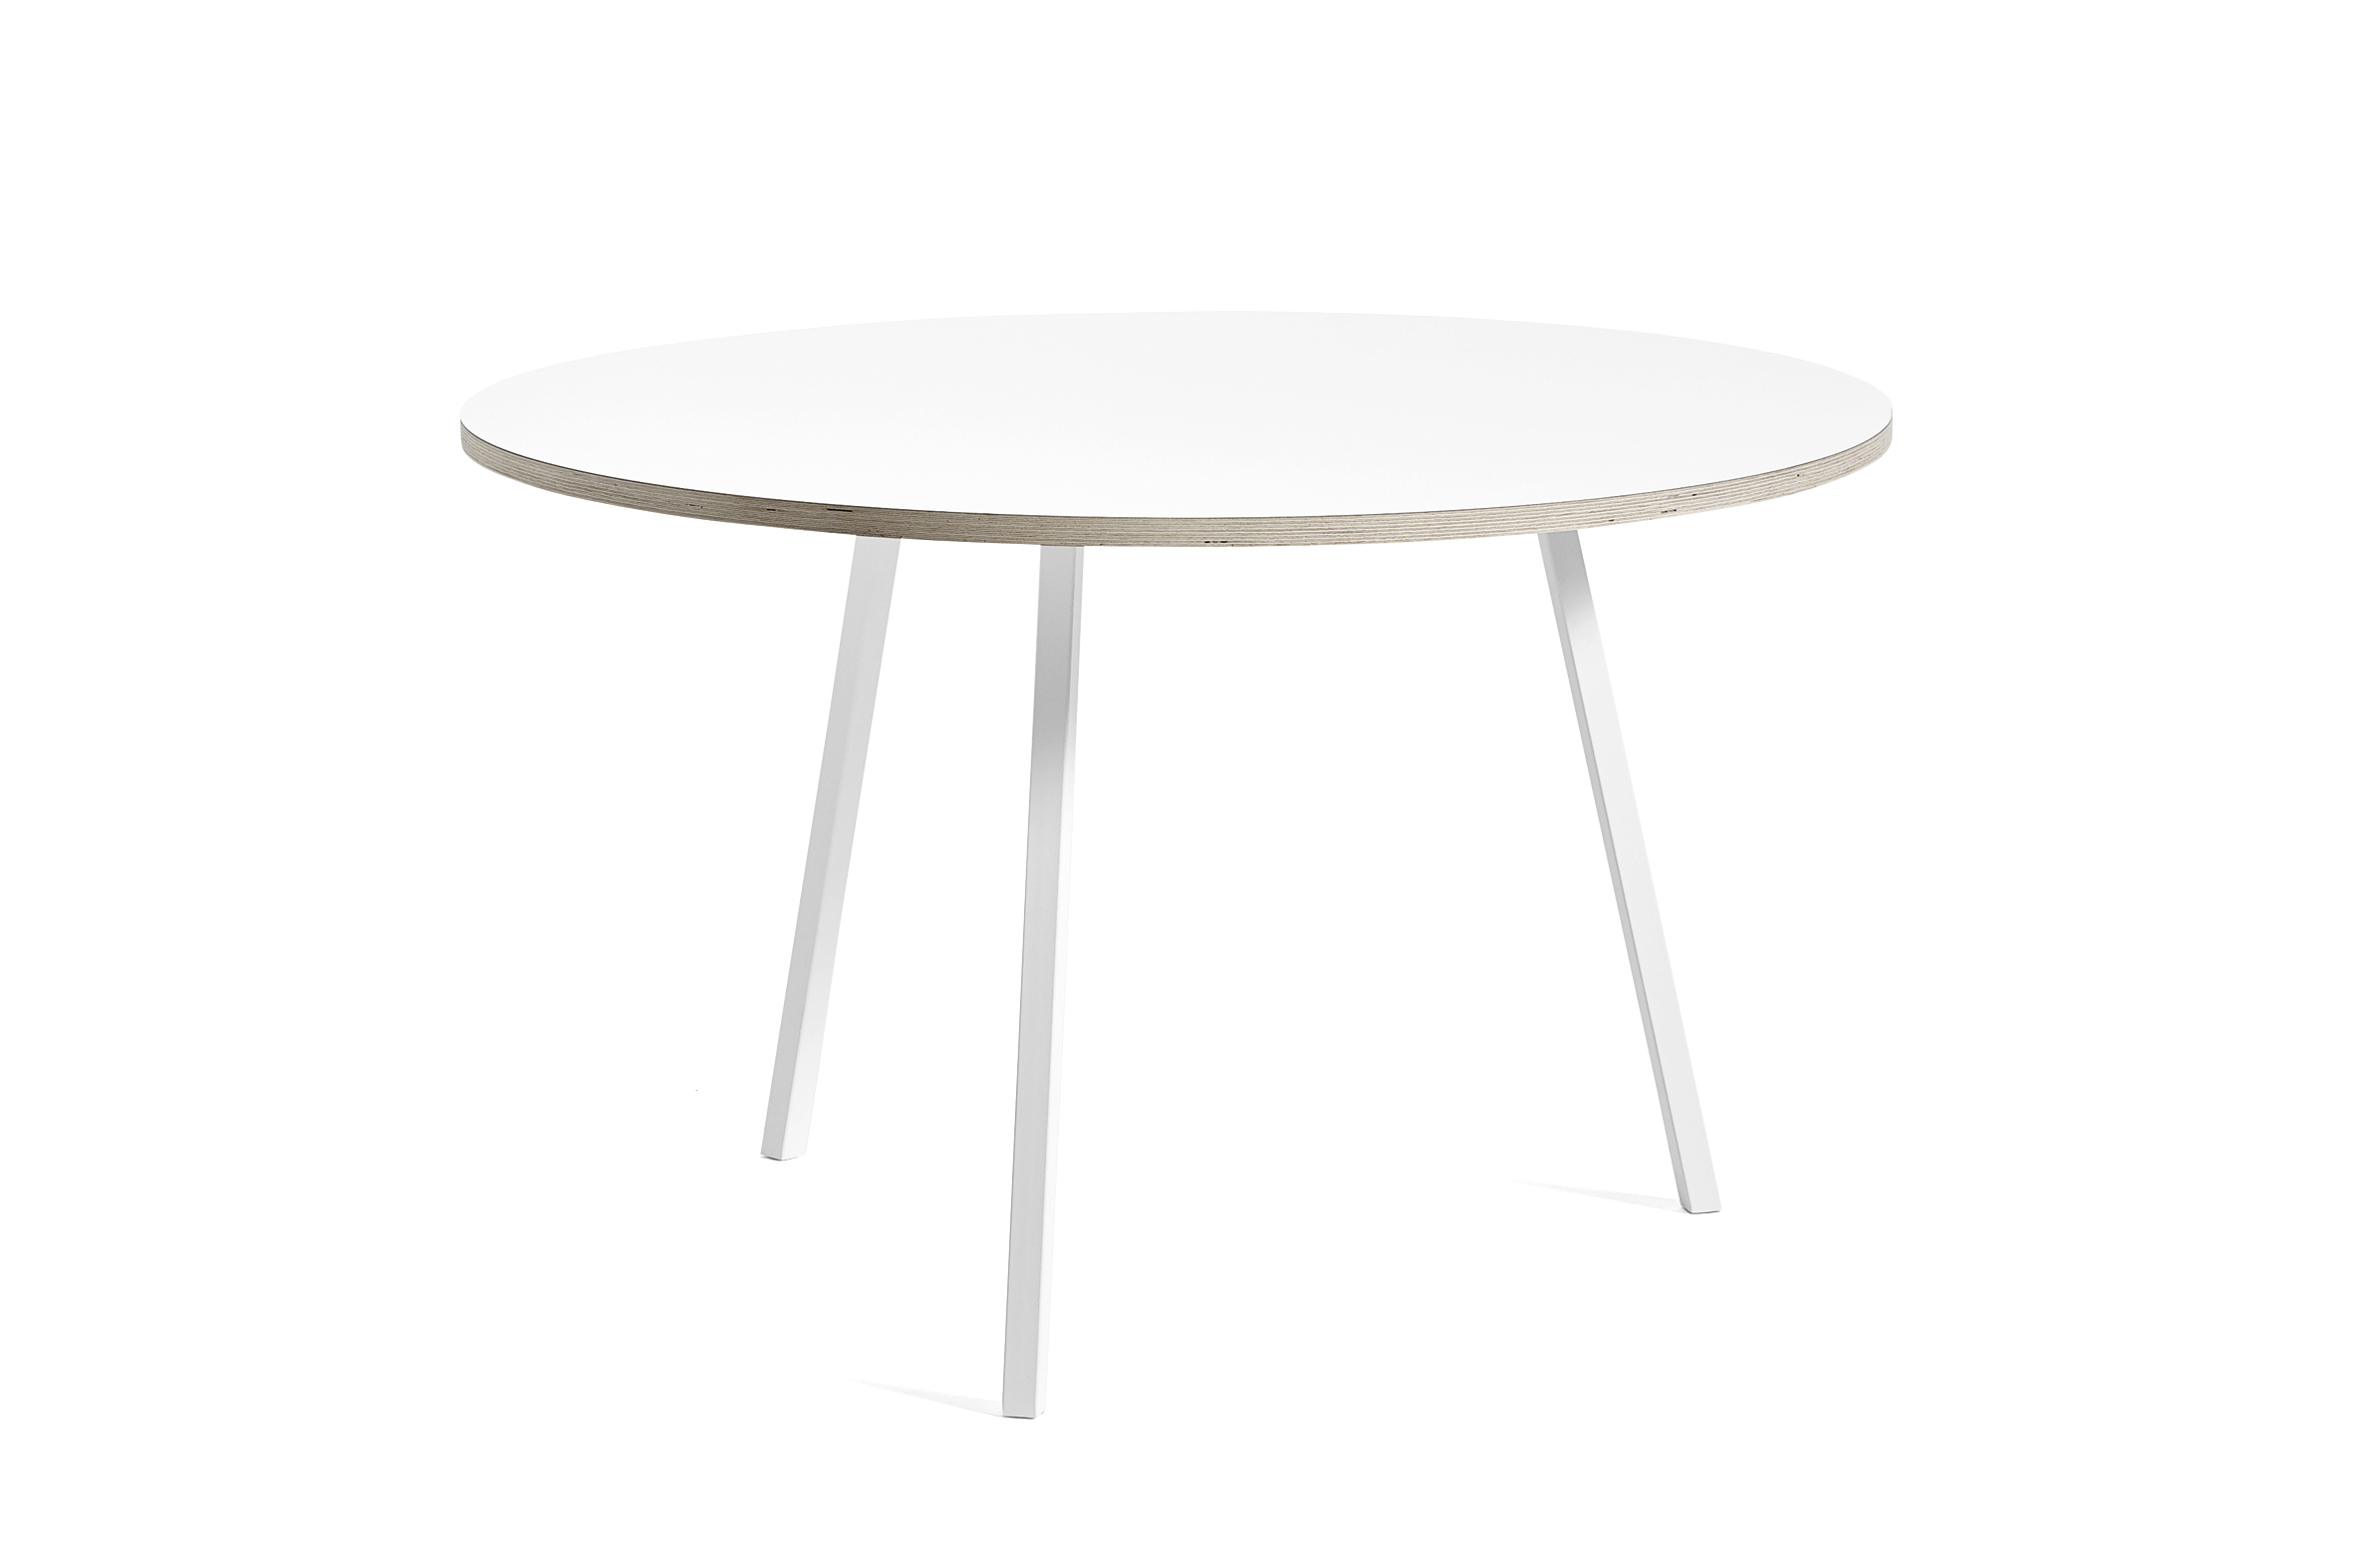 Loop stand round table white laminate 120 cm